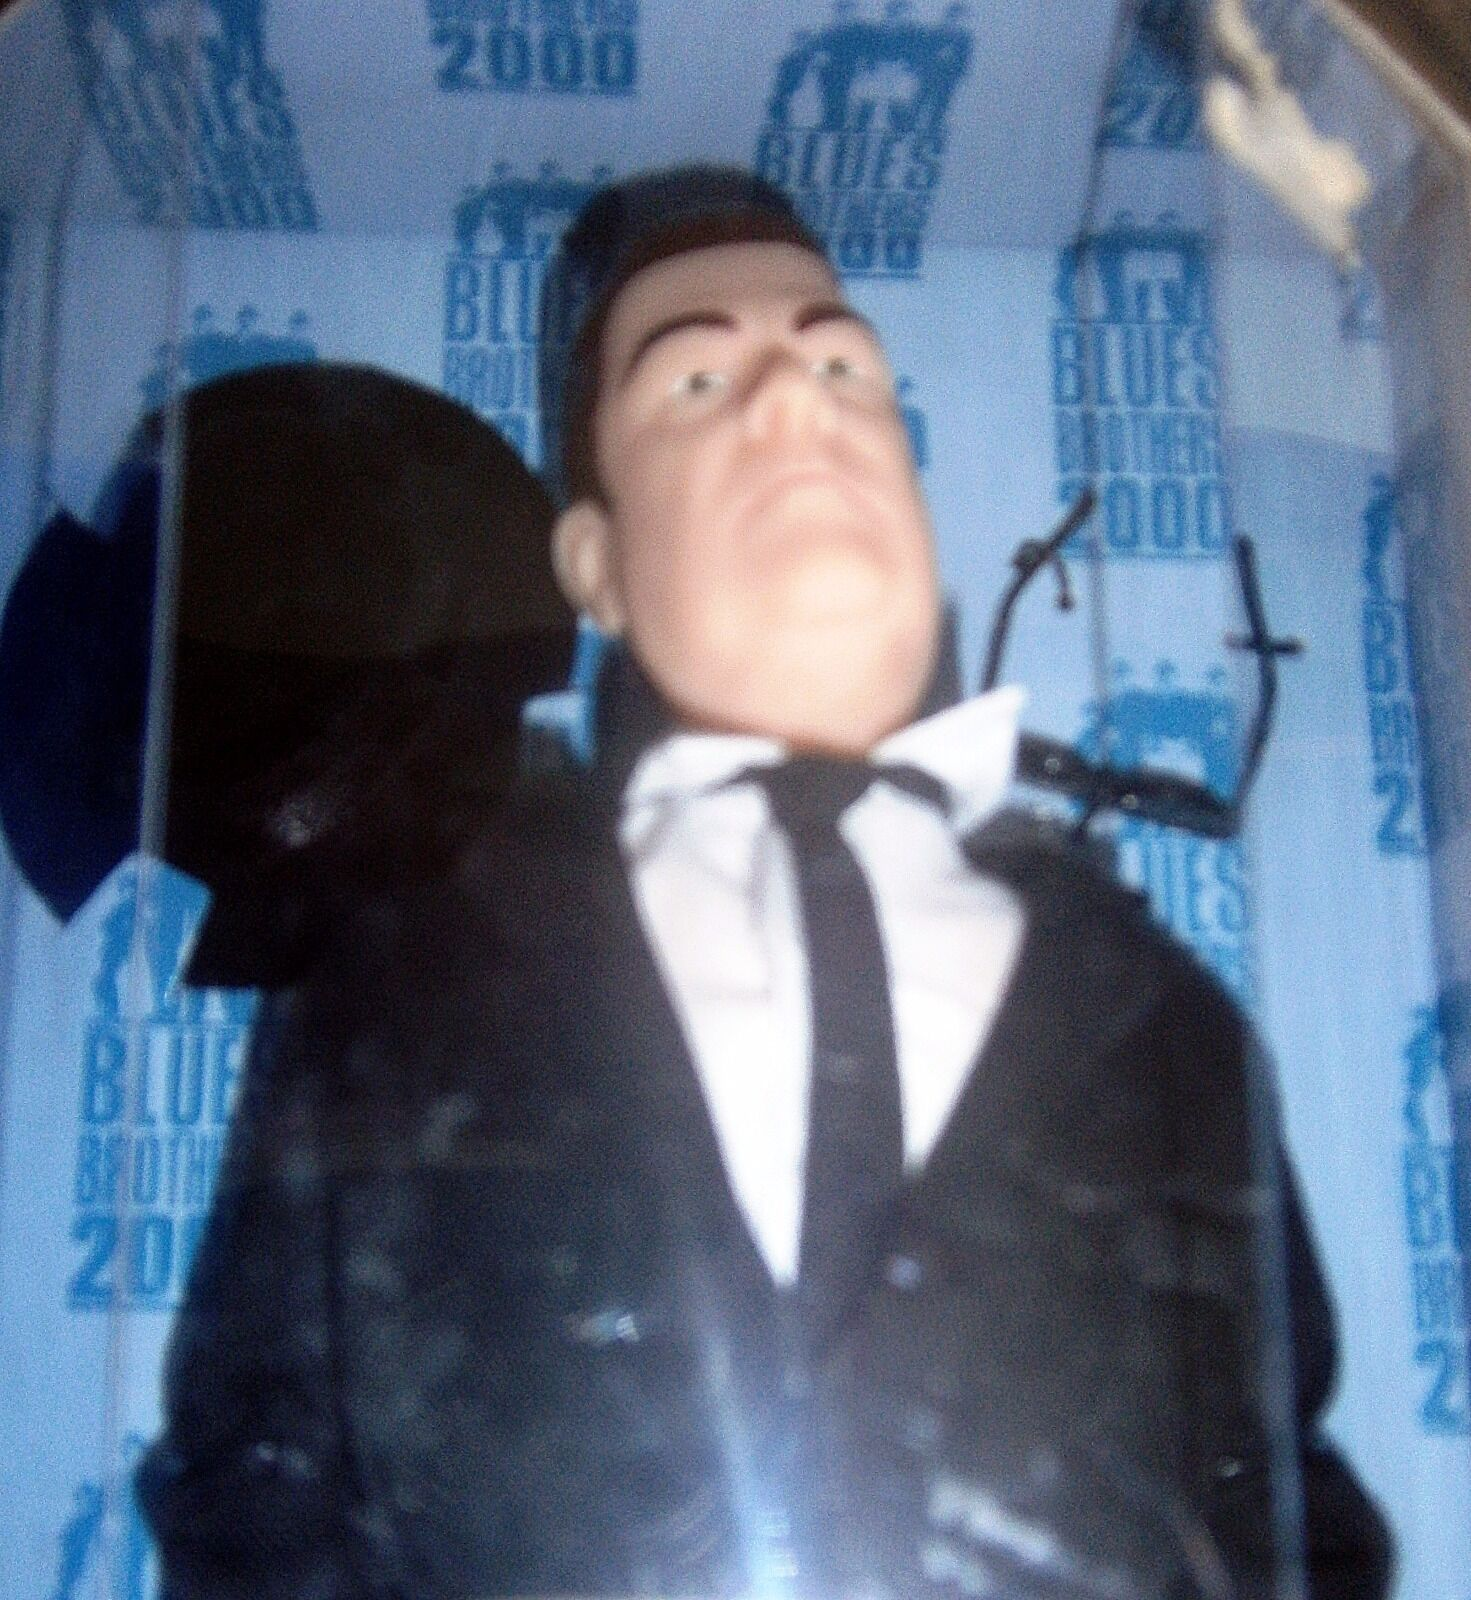 Blue Brothers Jake and John Goodman as Mack Dolls.  New in Box image 3